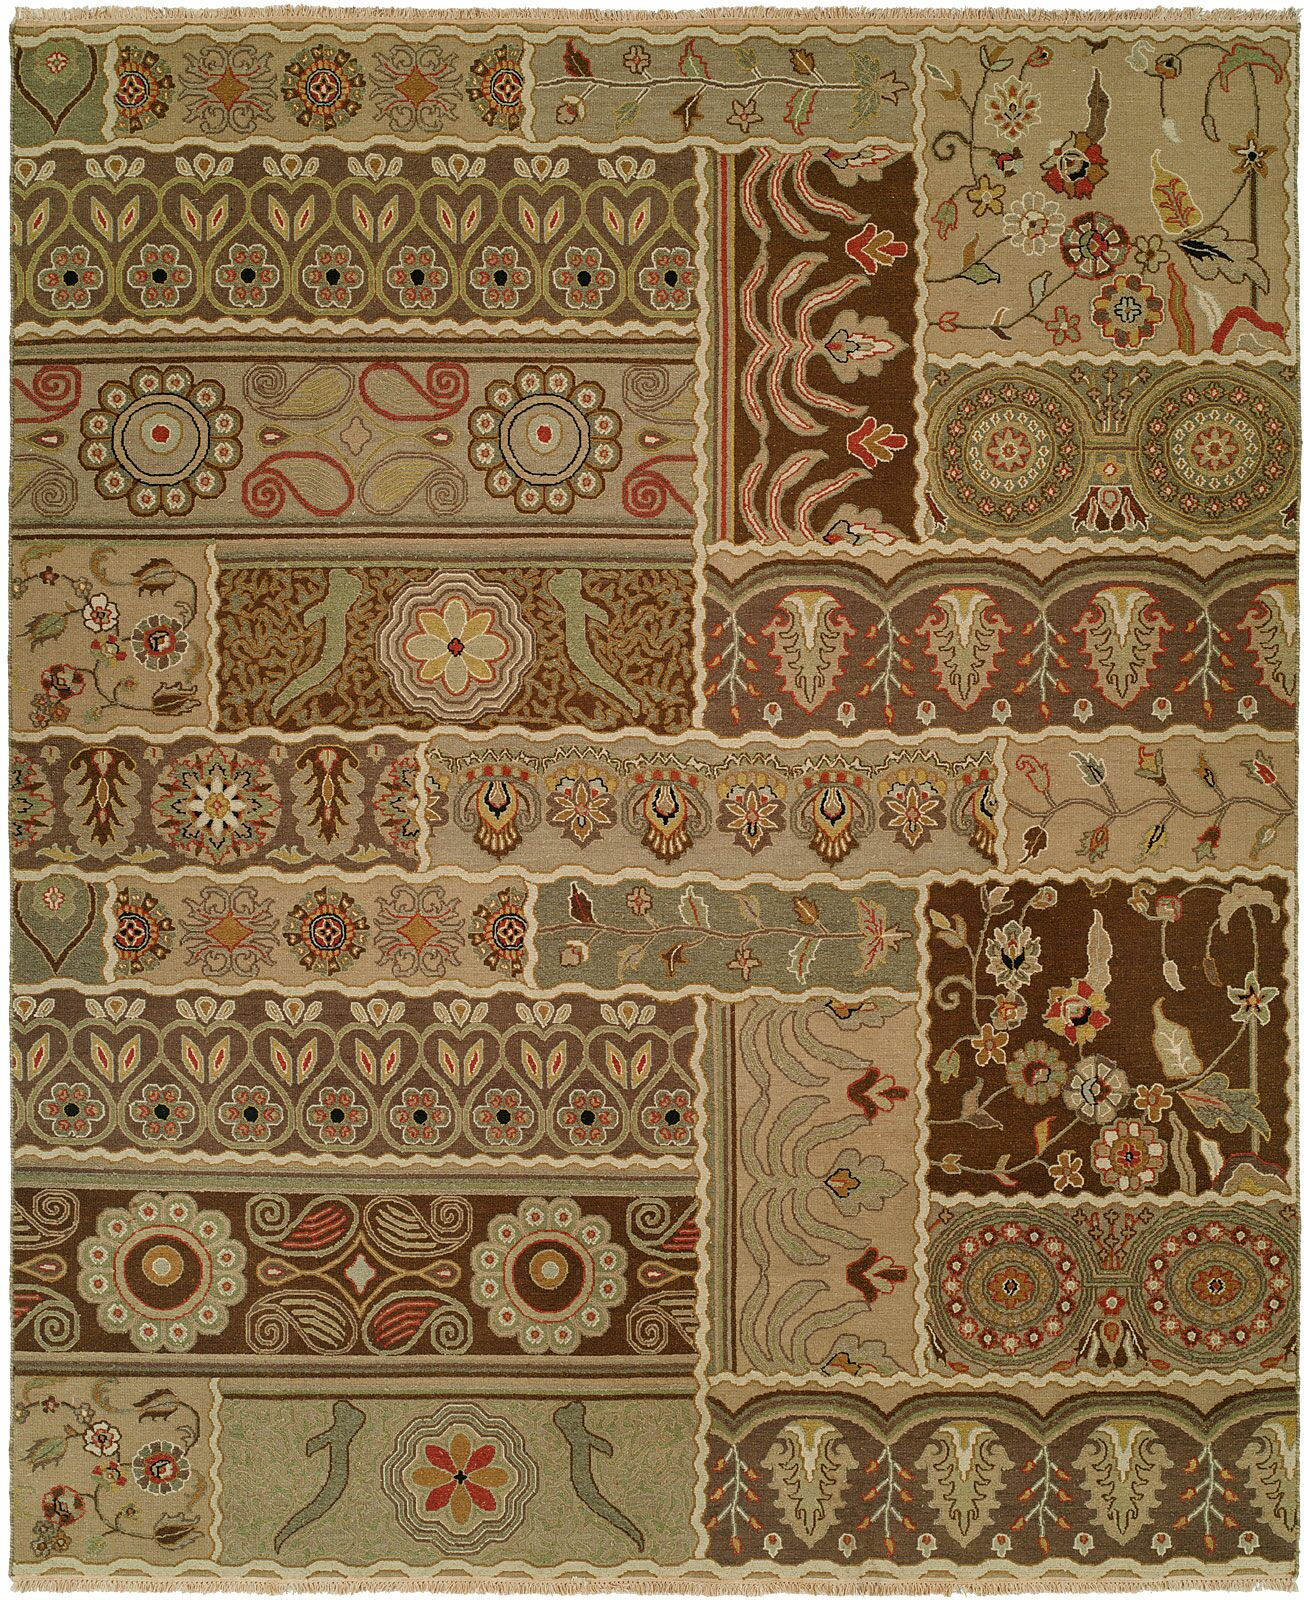 Massawa Hand-Woven Brown/Green Area Rug Rug Size: Rectangle 12' x 15'